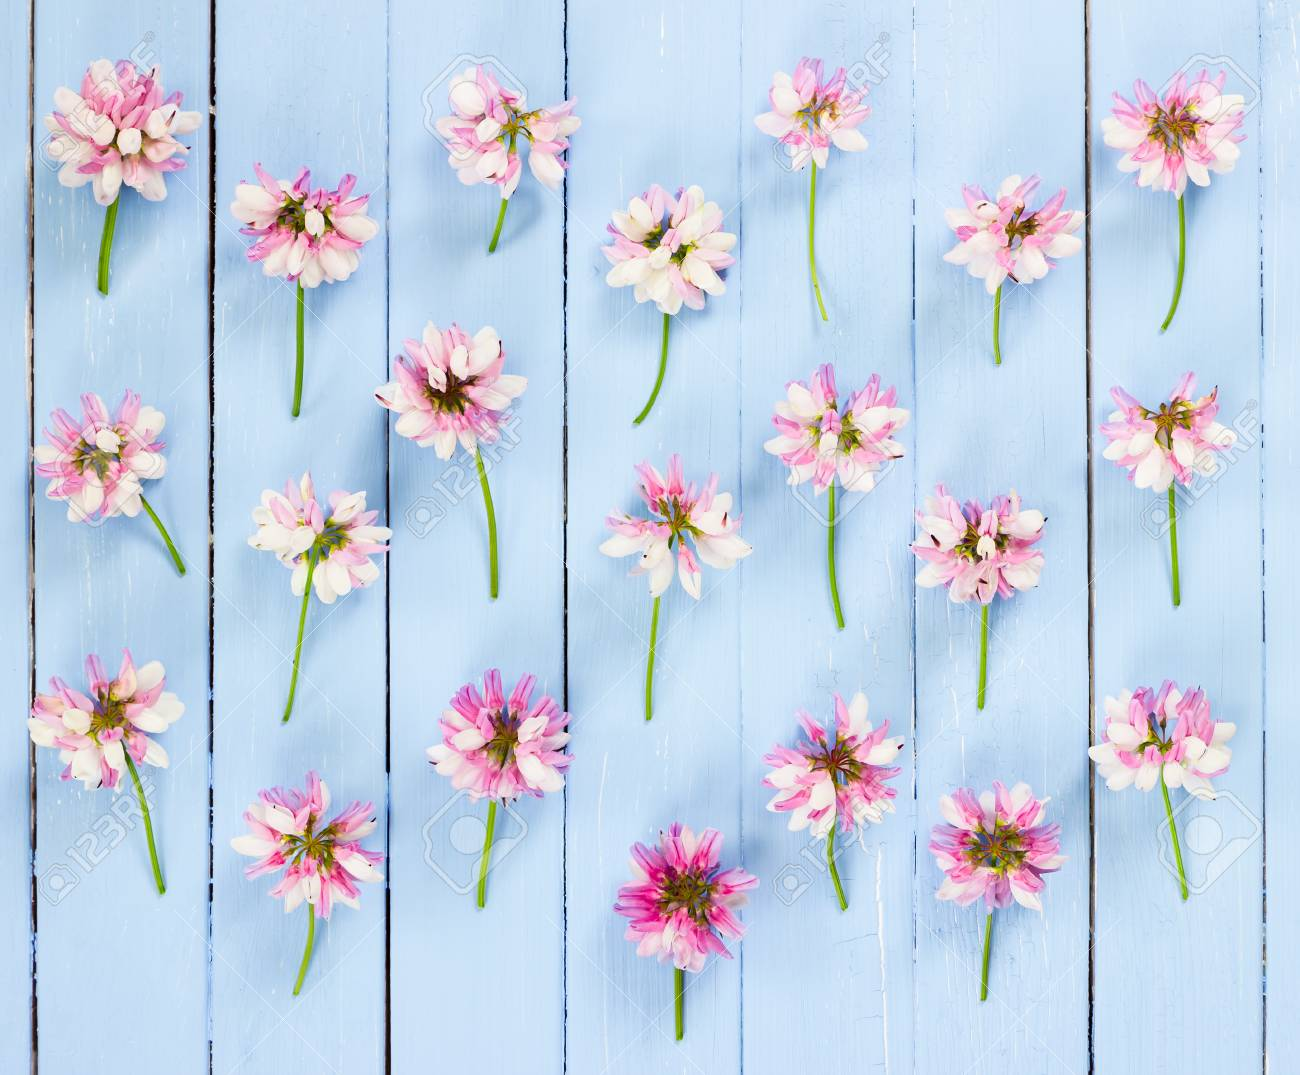 Meadow Pink Flowers On Blue Wooden Background Flat Lay Top Stock